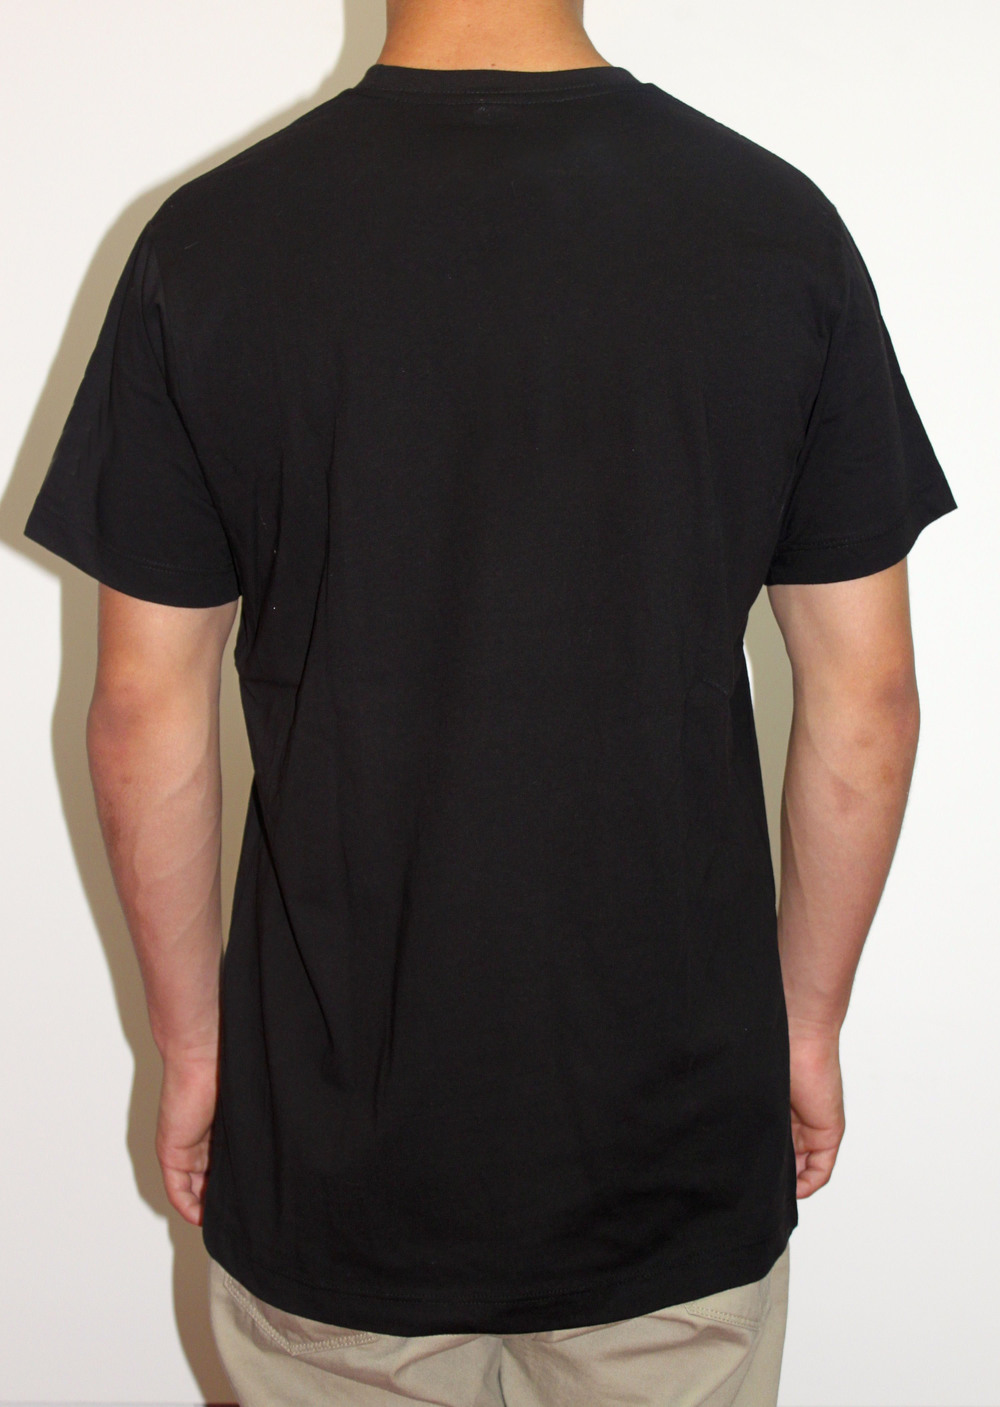 tee_webshield-back.jpg